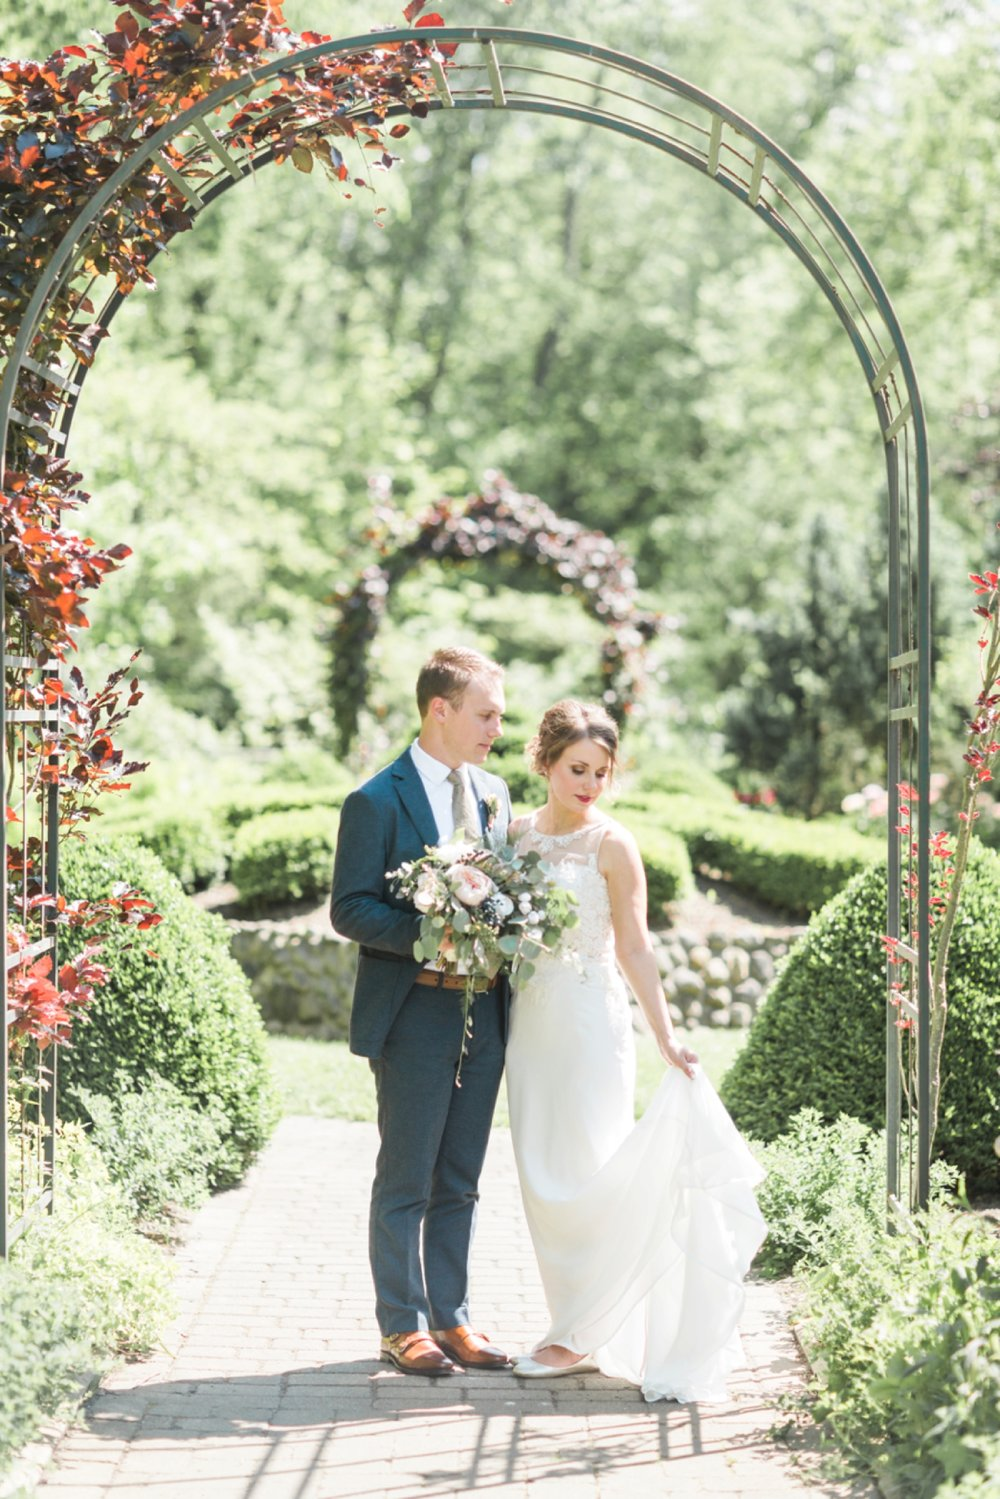 wegerzyn-gardens-wedding-dayton-ohio-chloe-luka-photography_0043.jpg